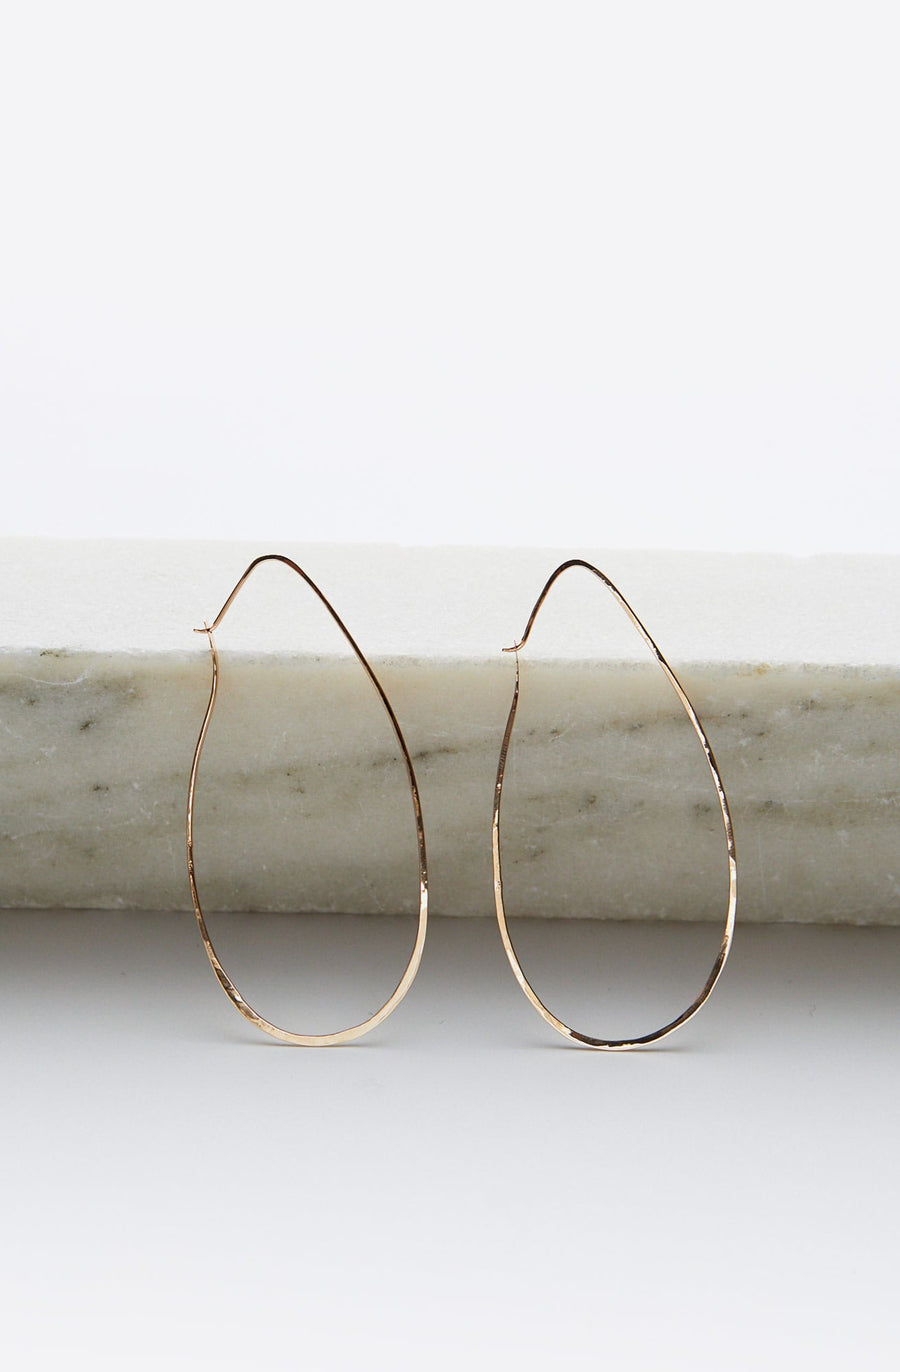 Tear Drop Hoop Earrings-14K yellow gold